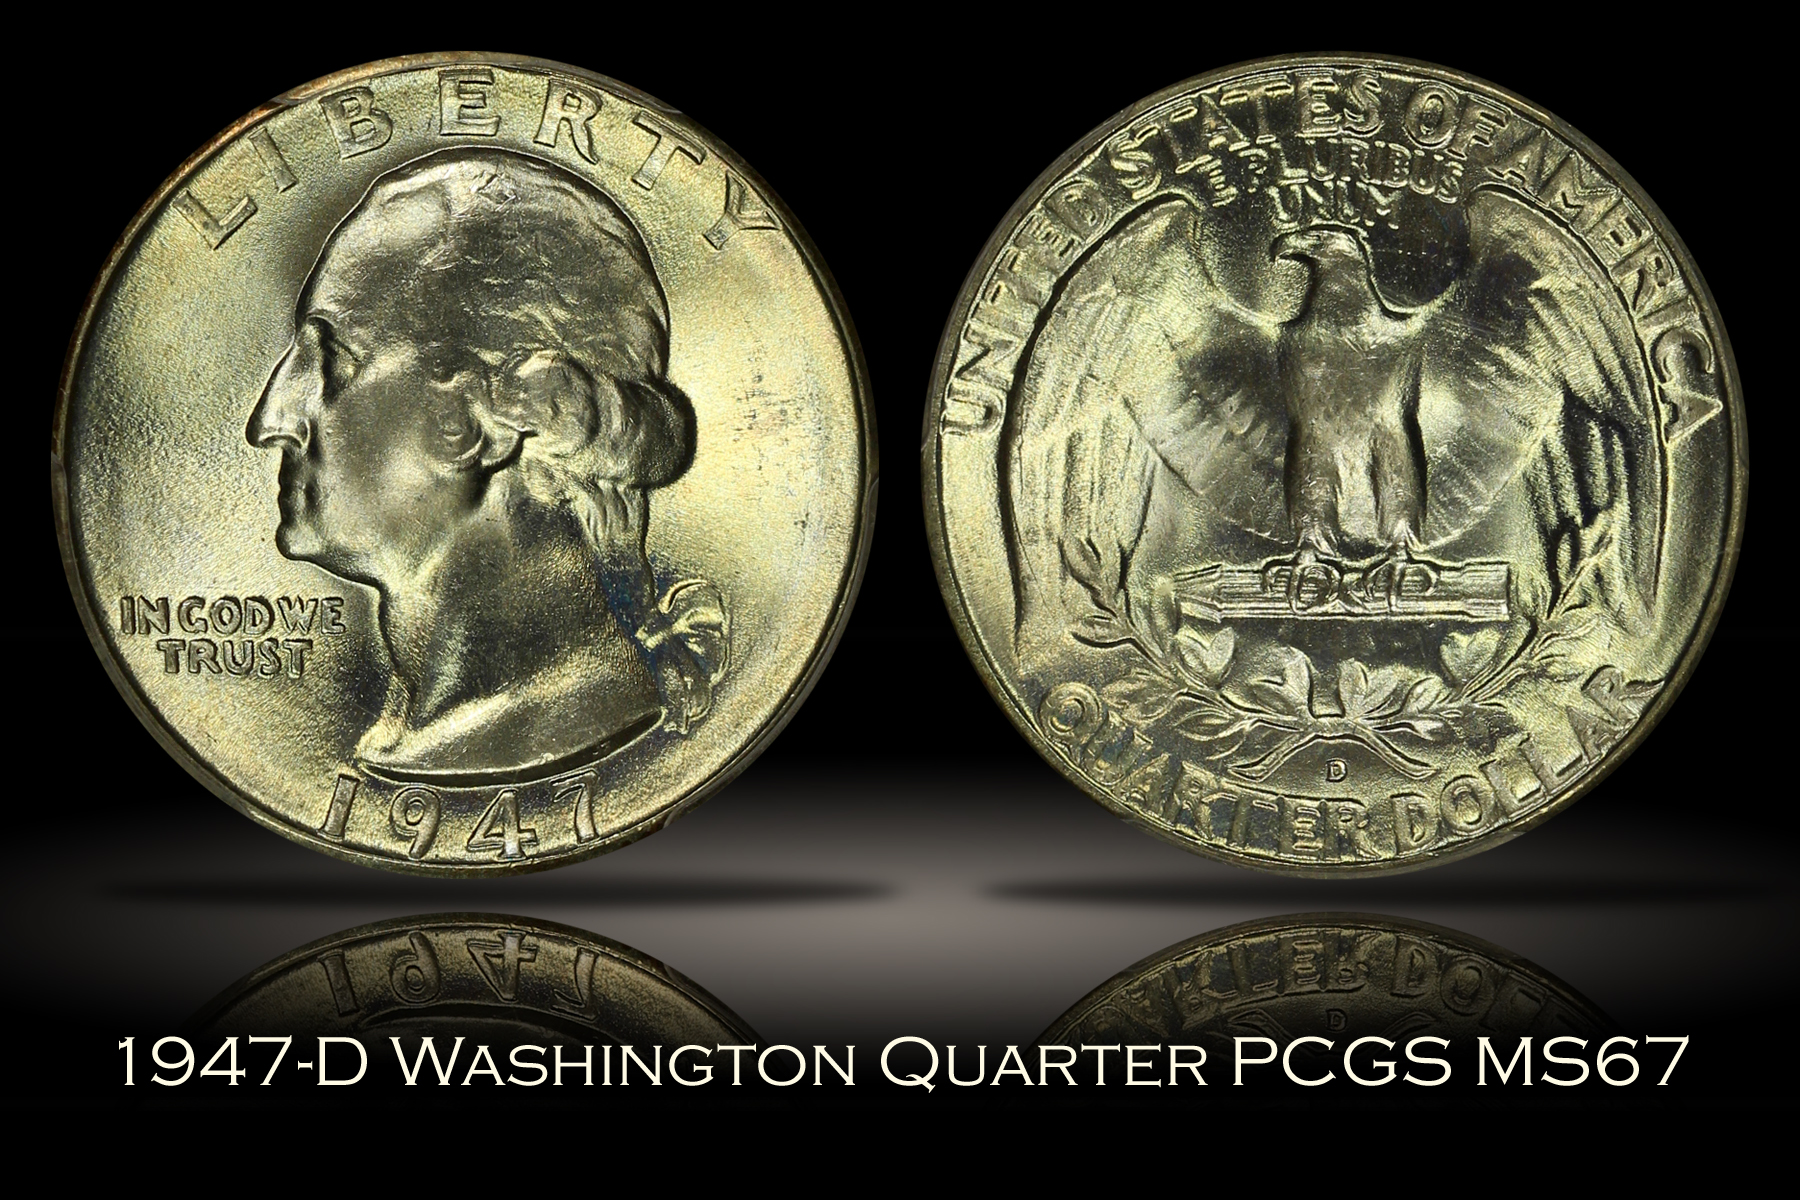 1947-D Washington Quarter PCGS MS67